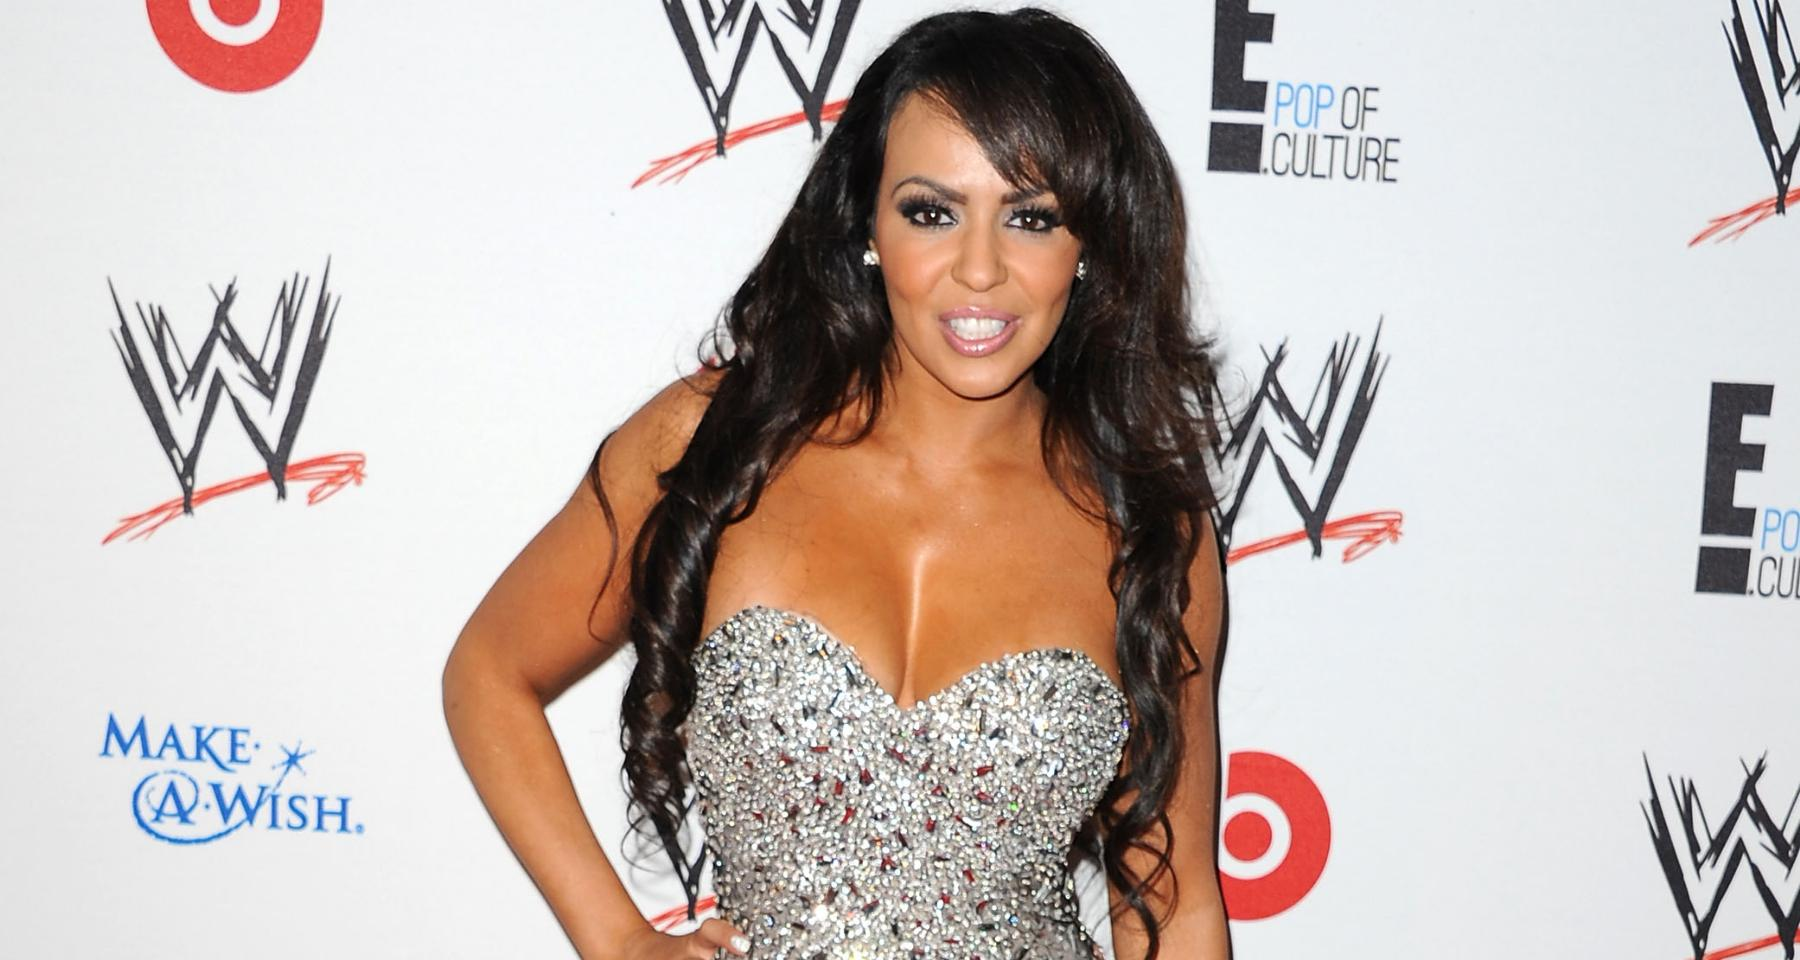 Wwe Diva Layla El Announces Retirement After Nine Years